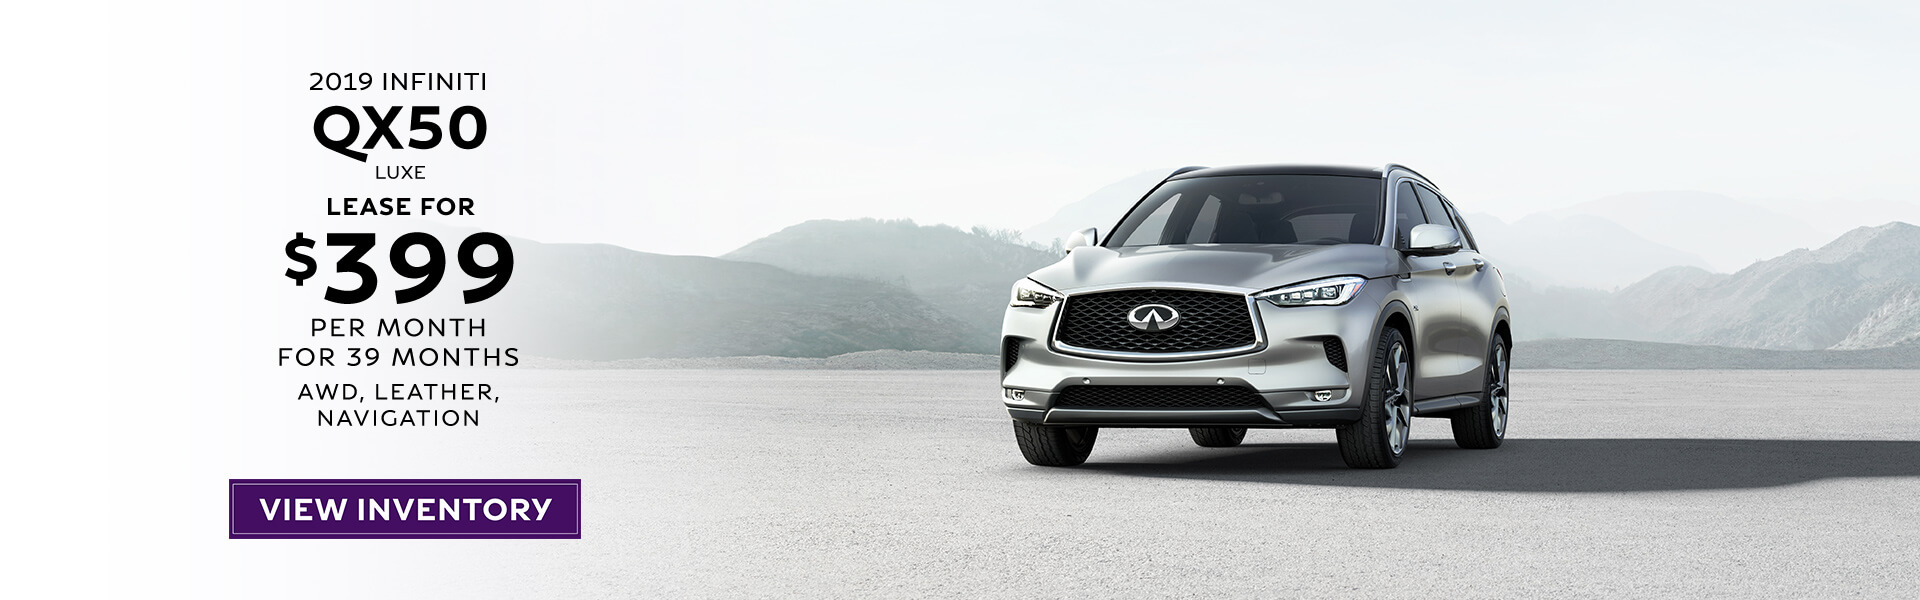 QX50 Lease Banner